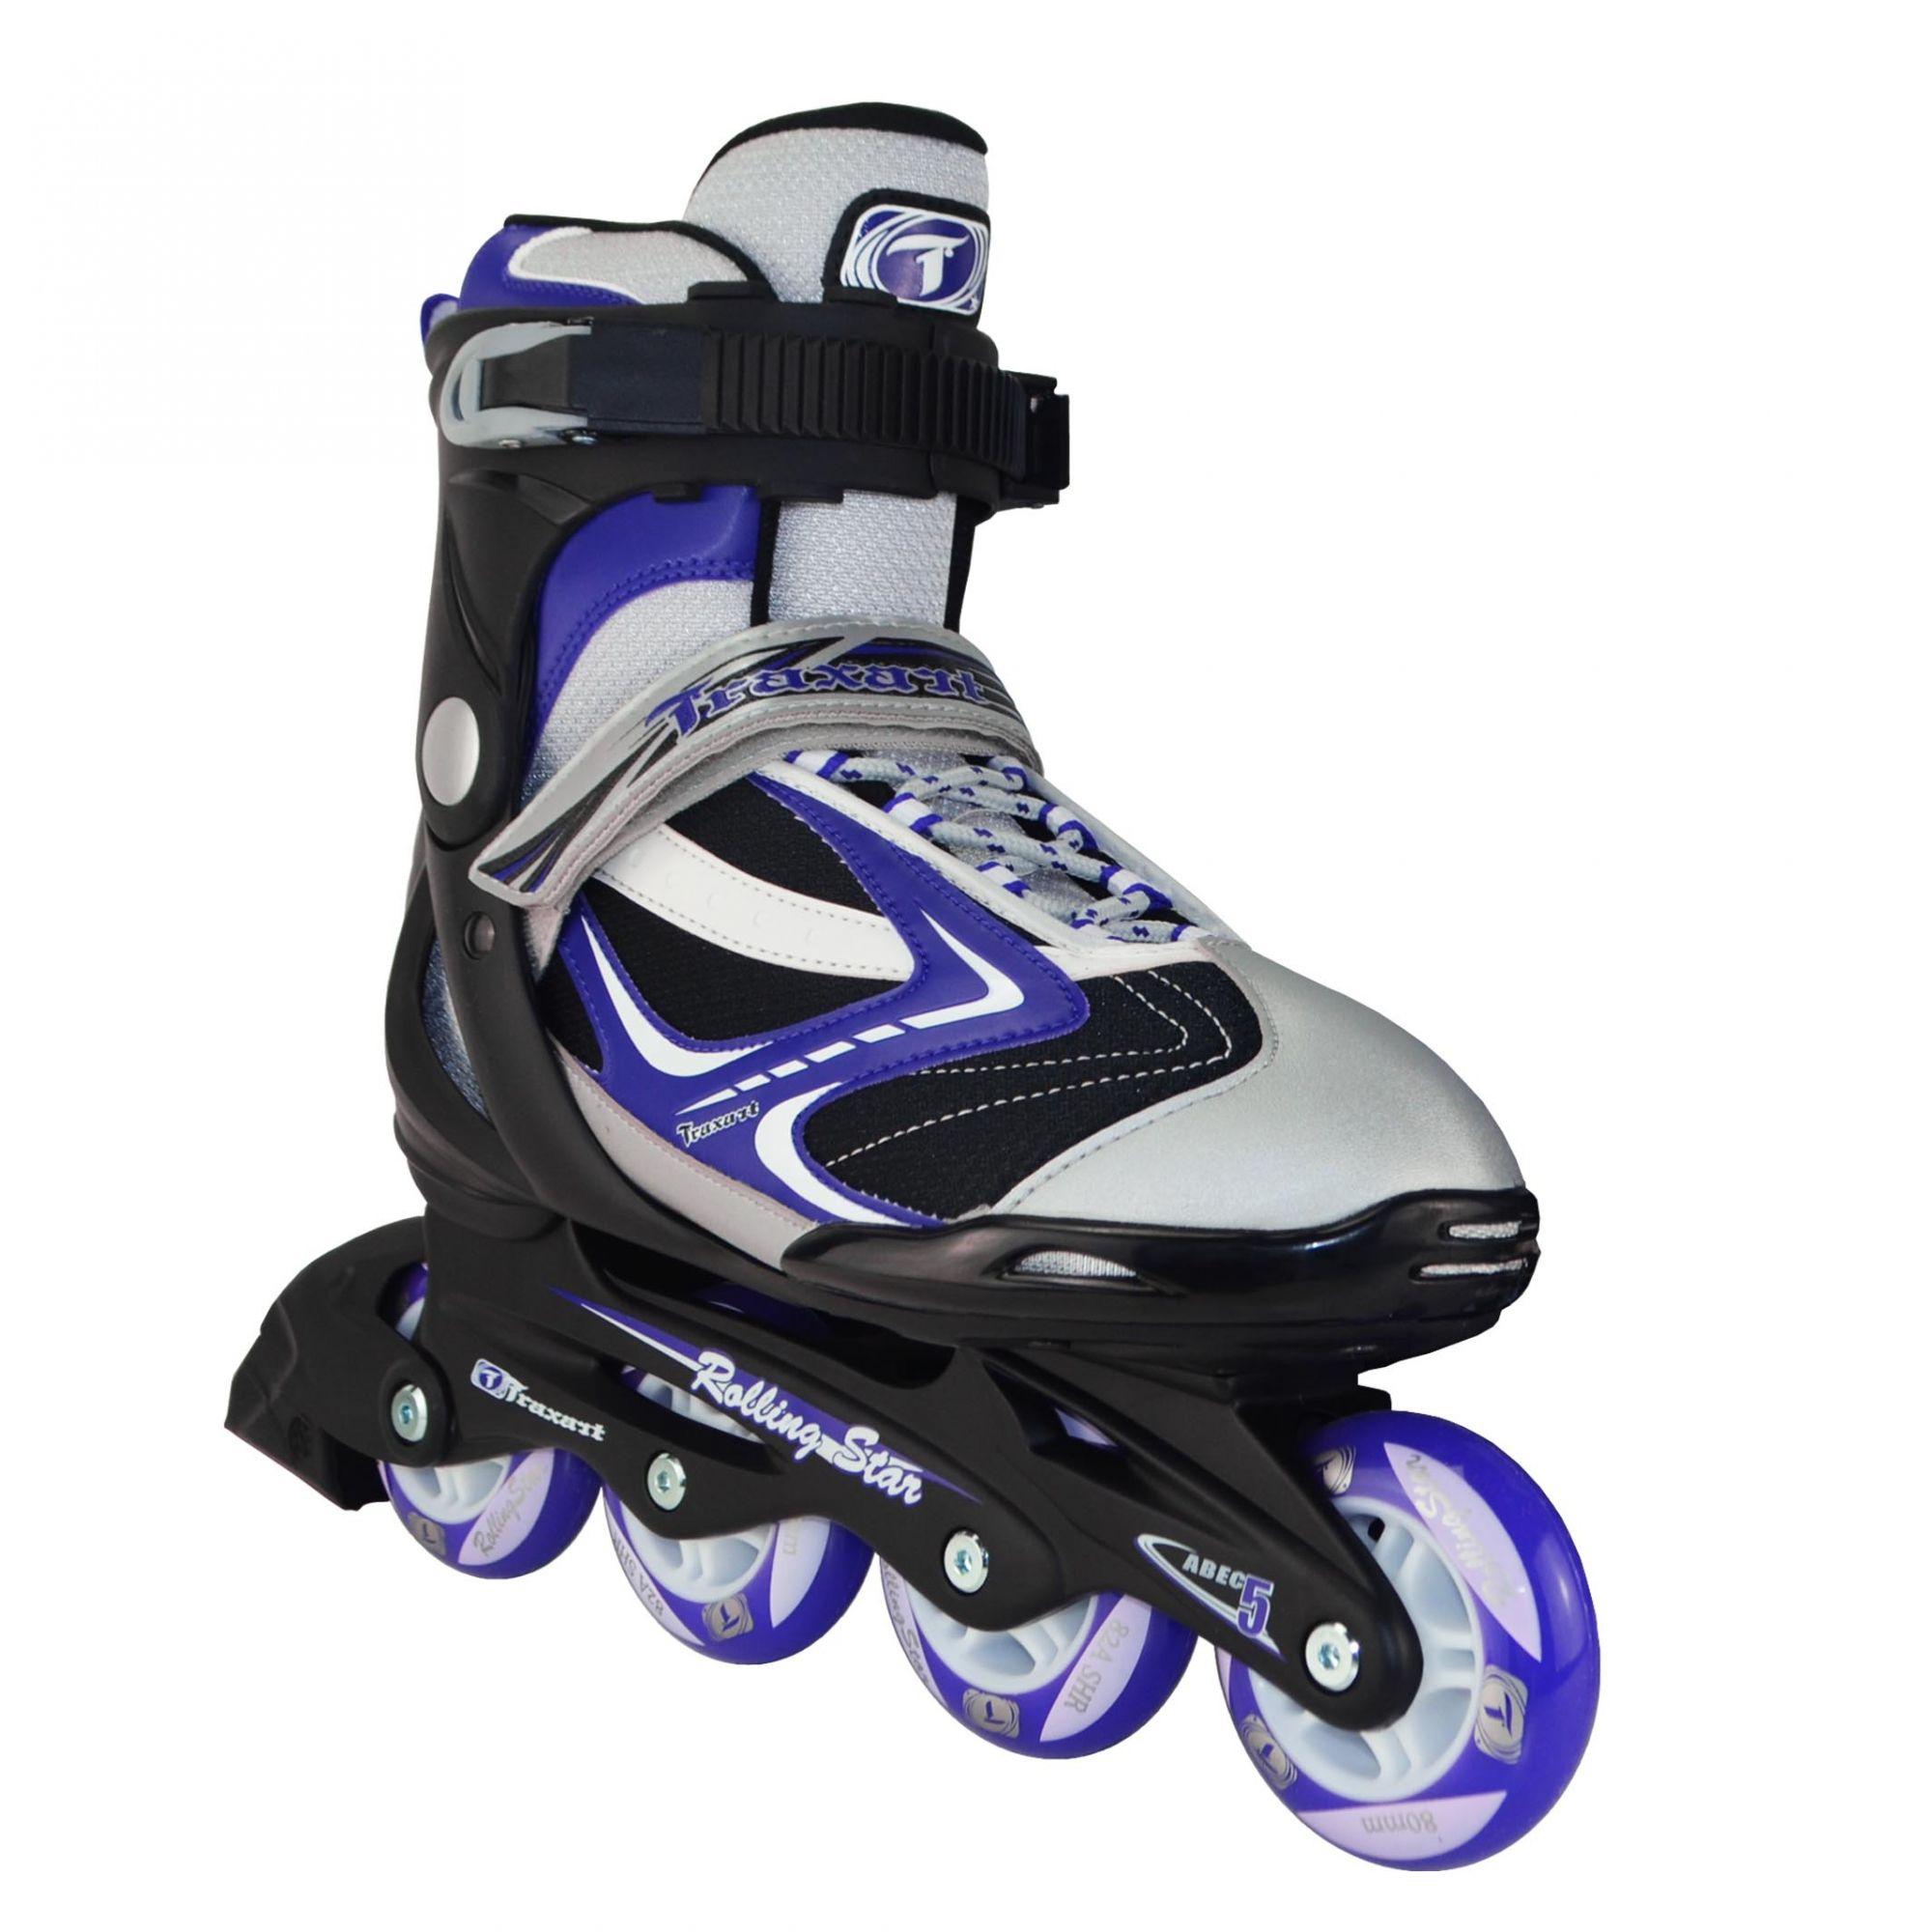 Patins Traxart Inline Rolling Star Roxo - Rodas 80mm ABEC-5